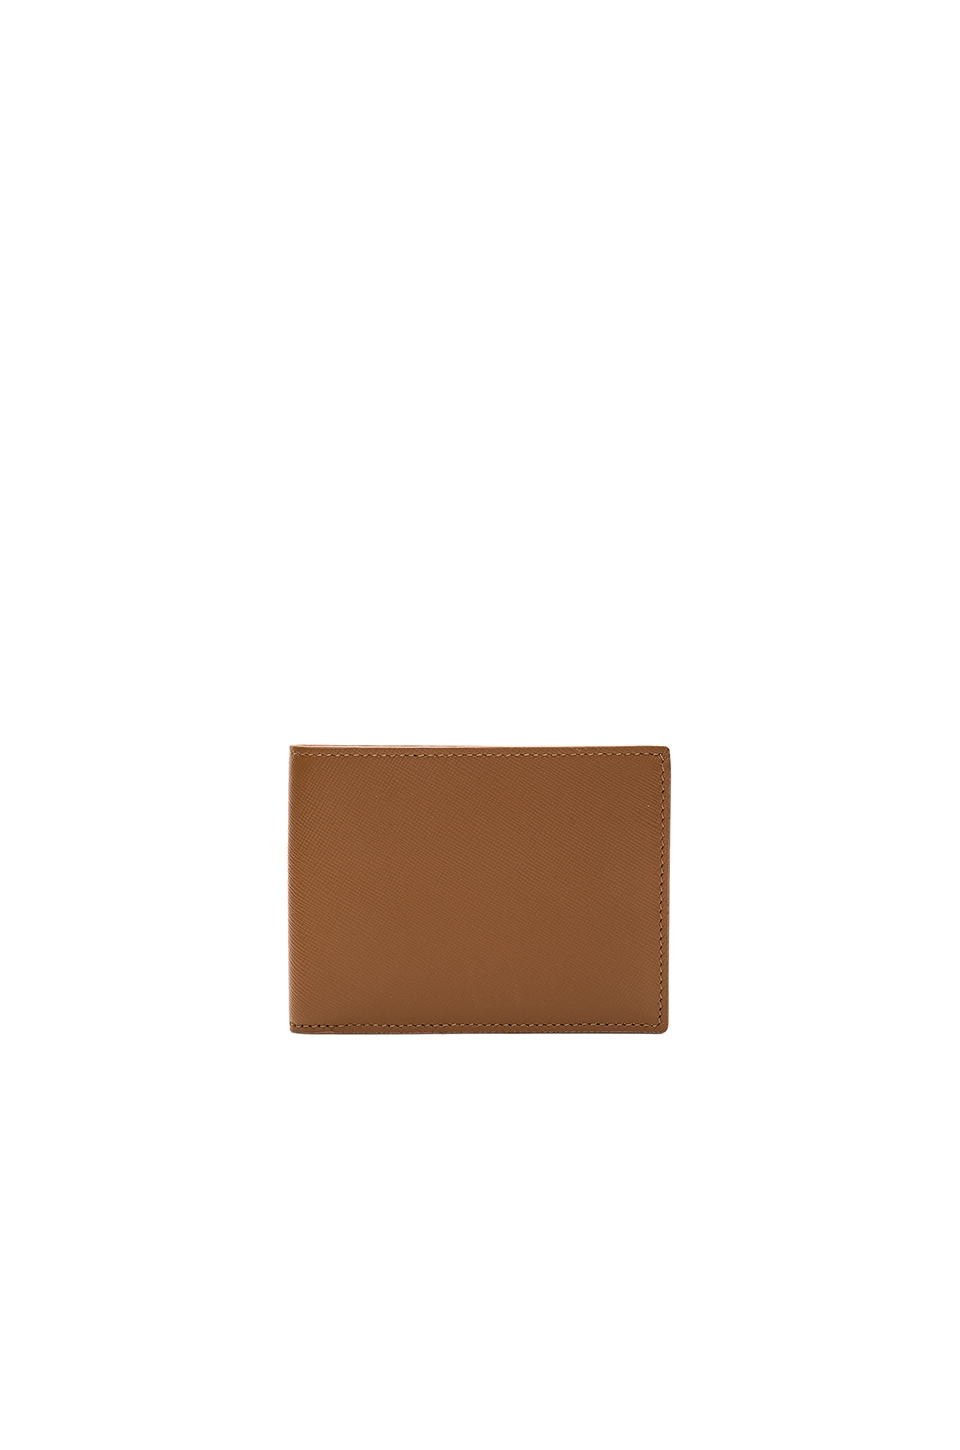 Standard Wallet by Common Projects